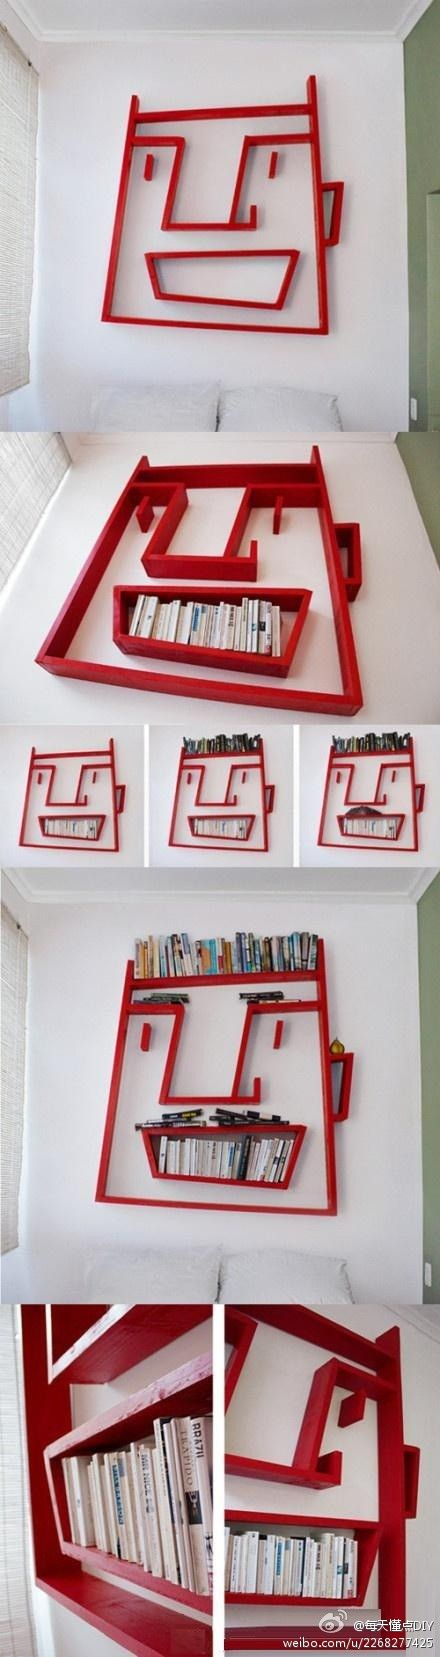 Great bookshelf for kids rooms and can be painted in any colour. Love the monster face